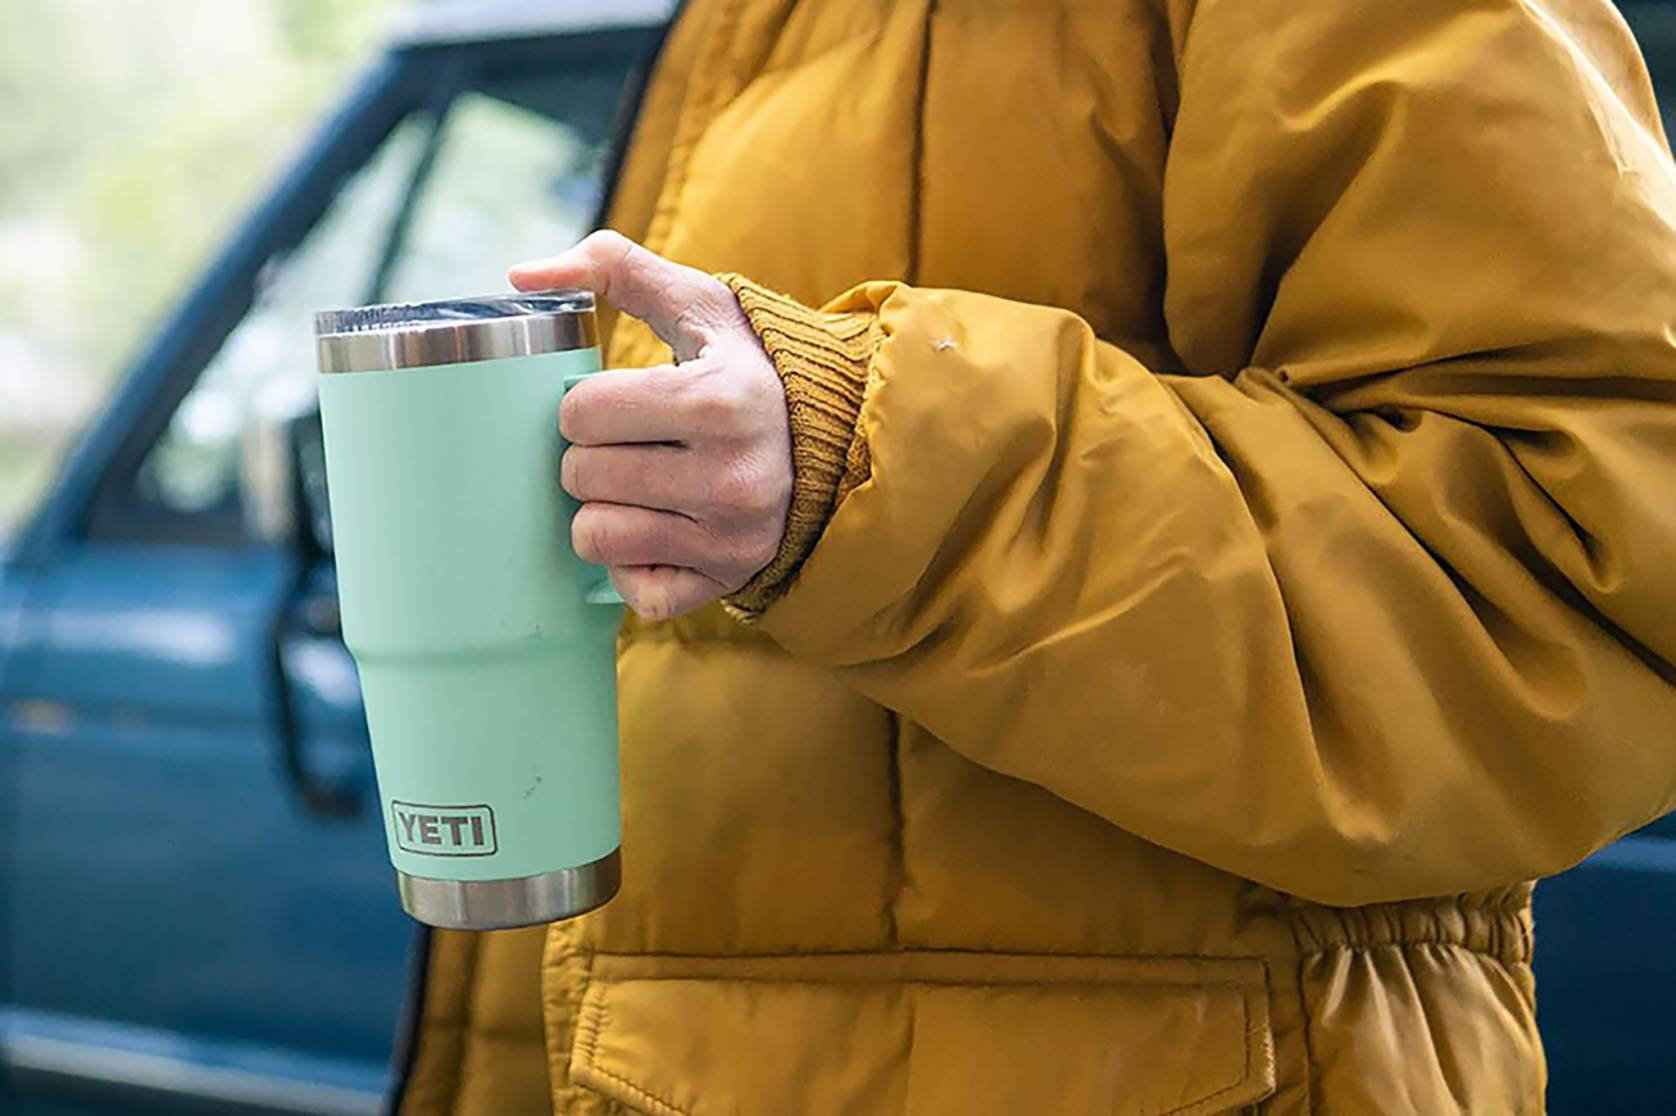 YETI Rambler Travel Mug